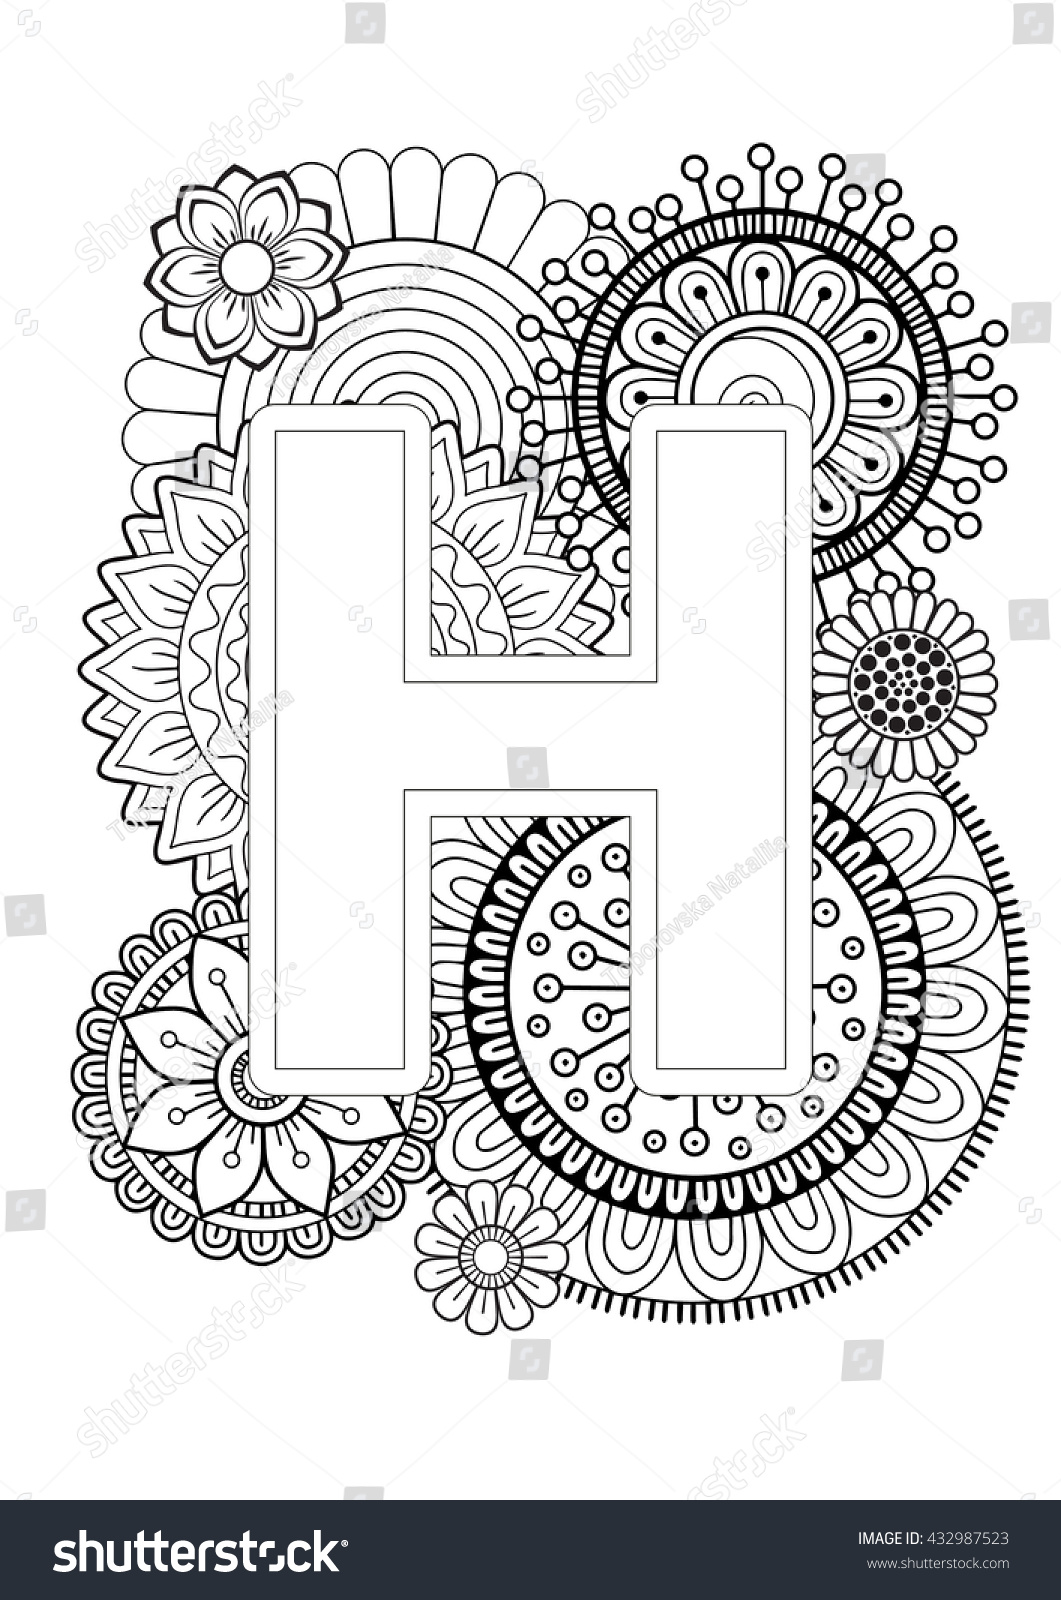 Doodle Floral Letters Coloring Book Adult Stock Vector (2018 ...